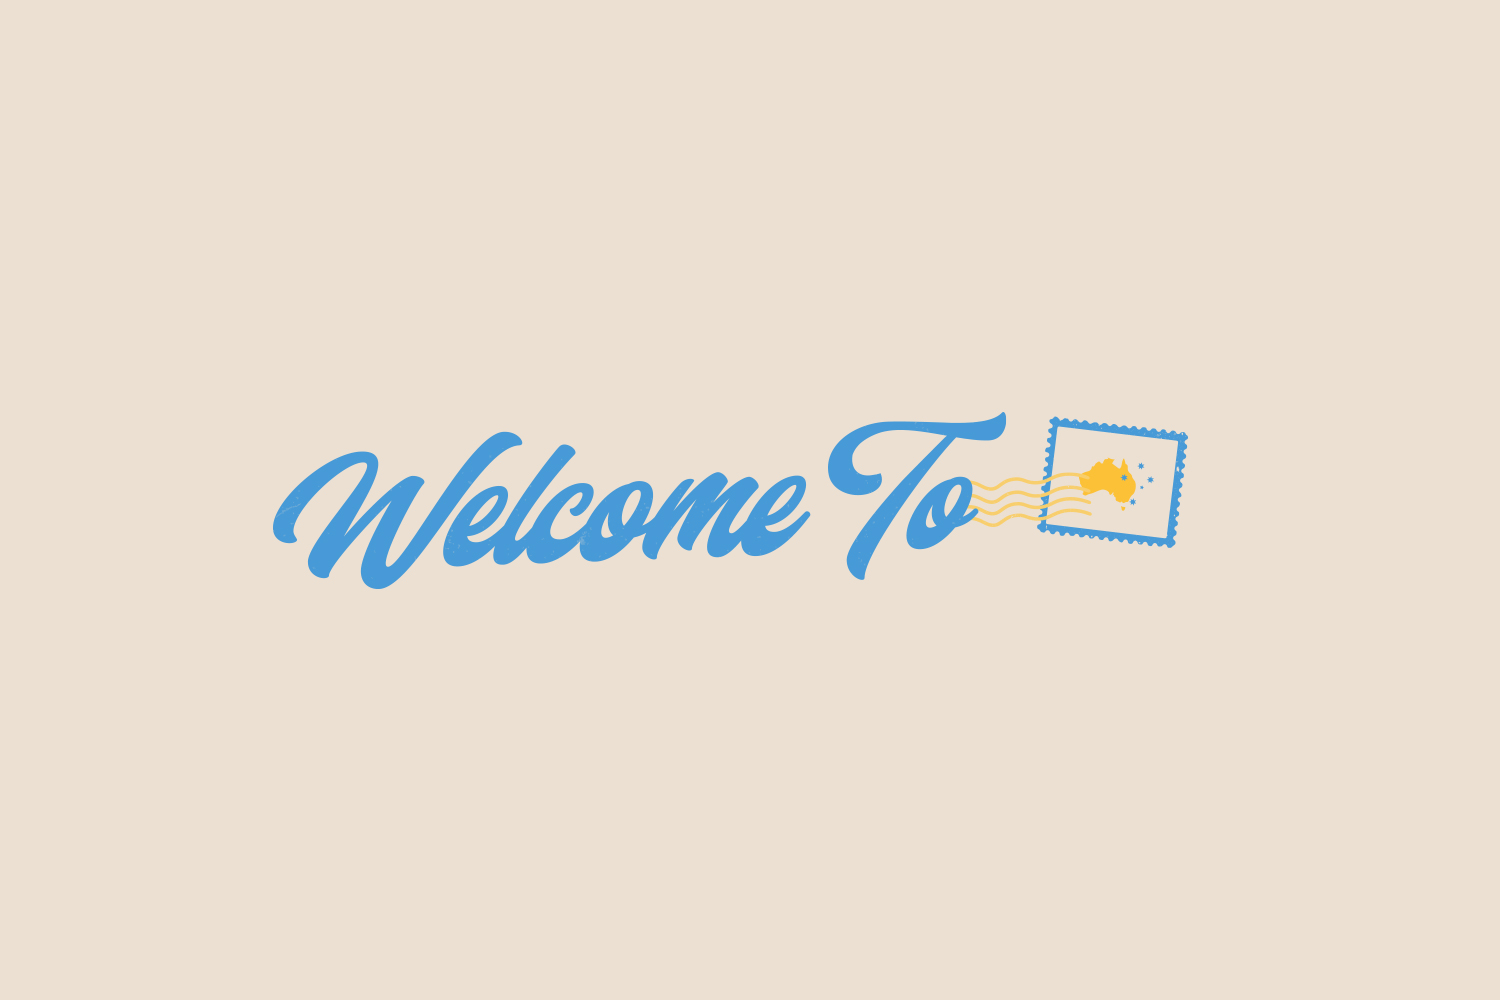 Welcome To - Signature Branding by Emily Banks Creative